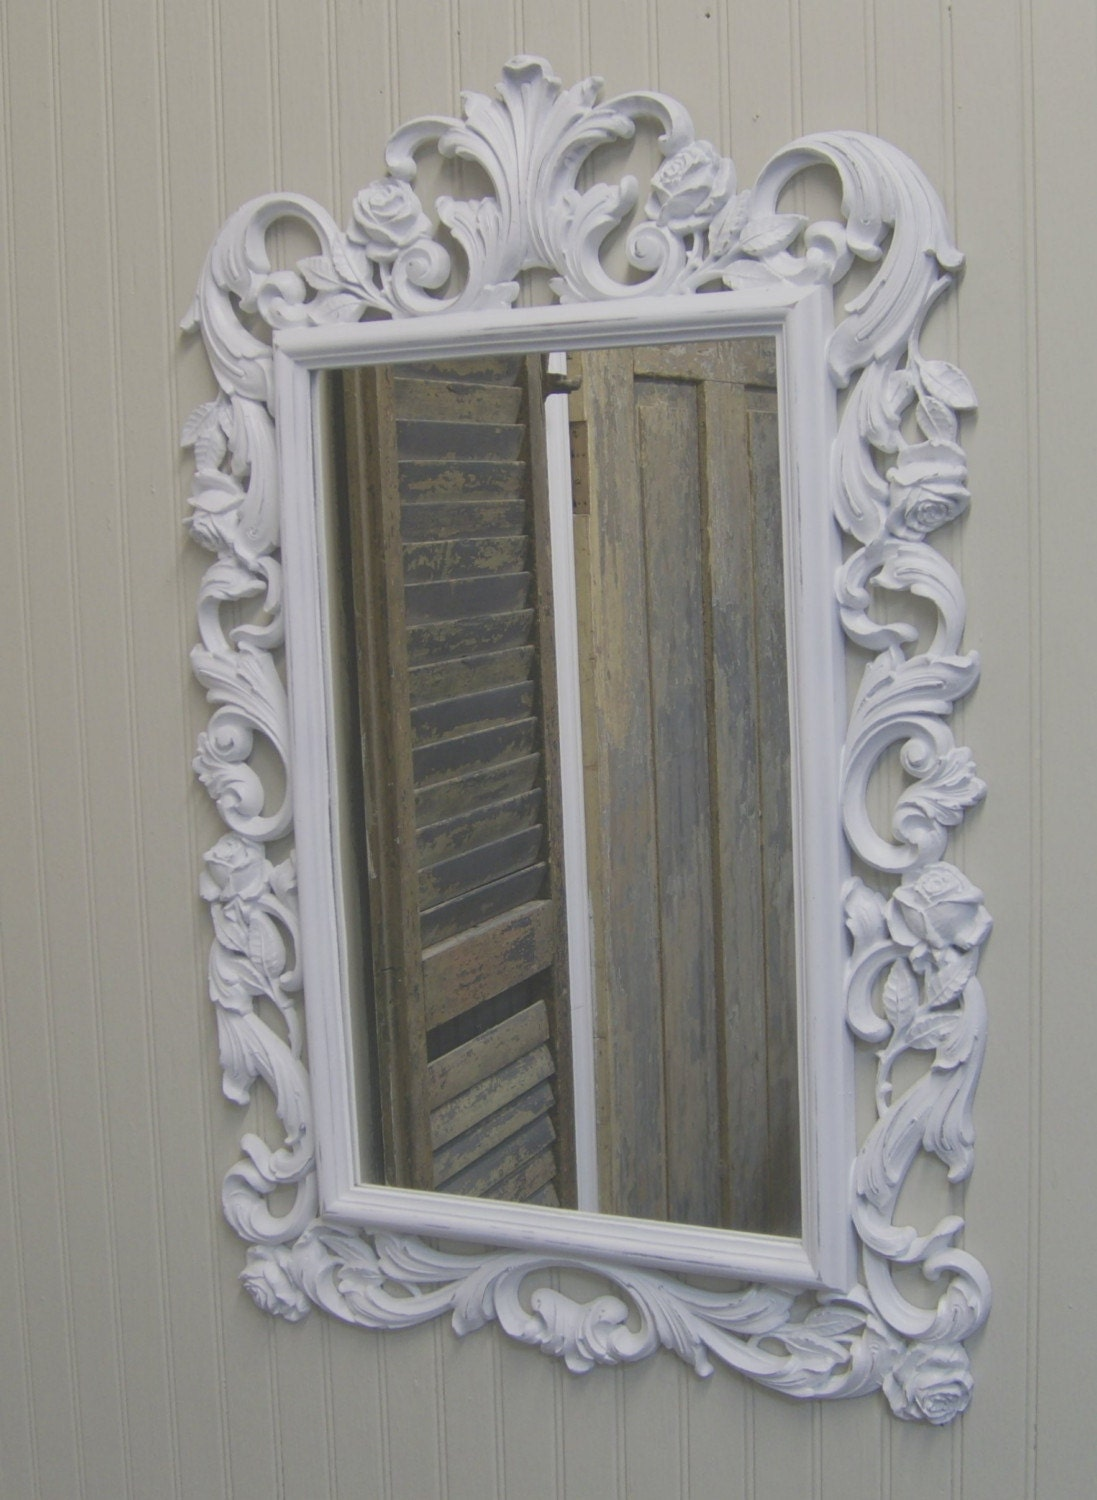 Shabby Painted Distressed White Scrolly Framed Mirror